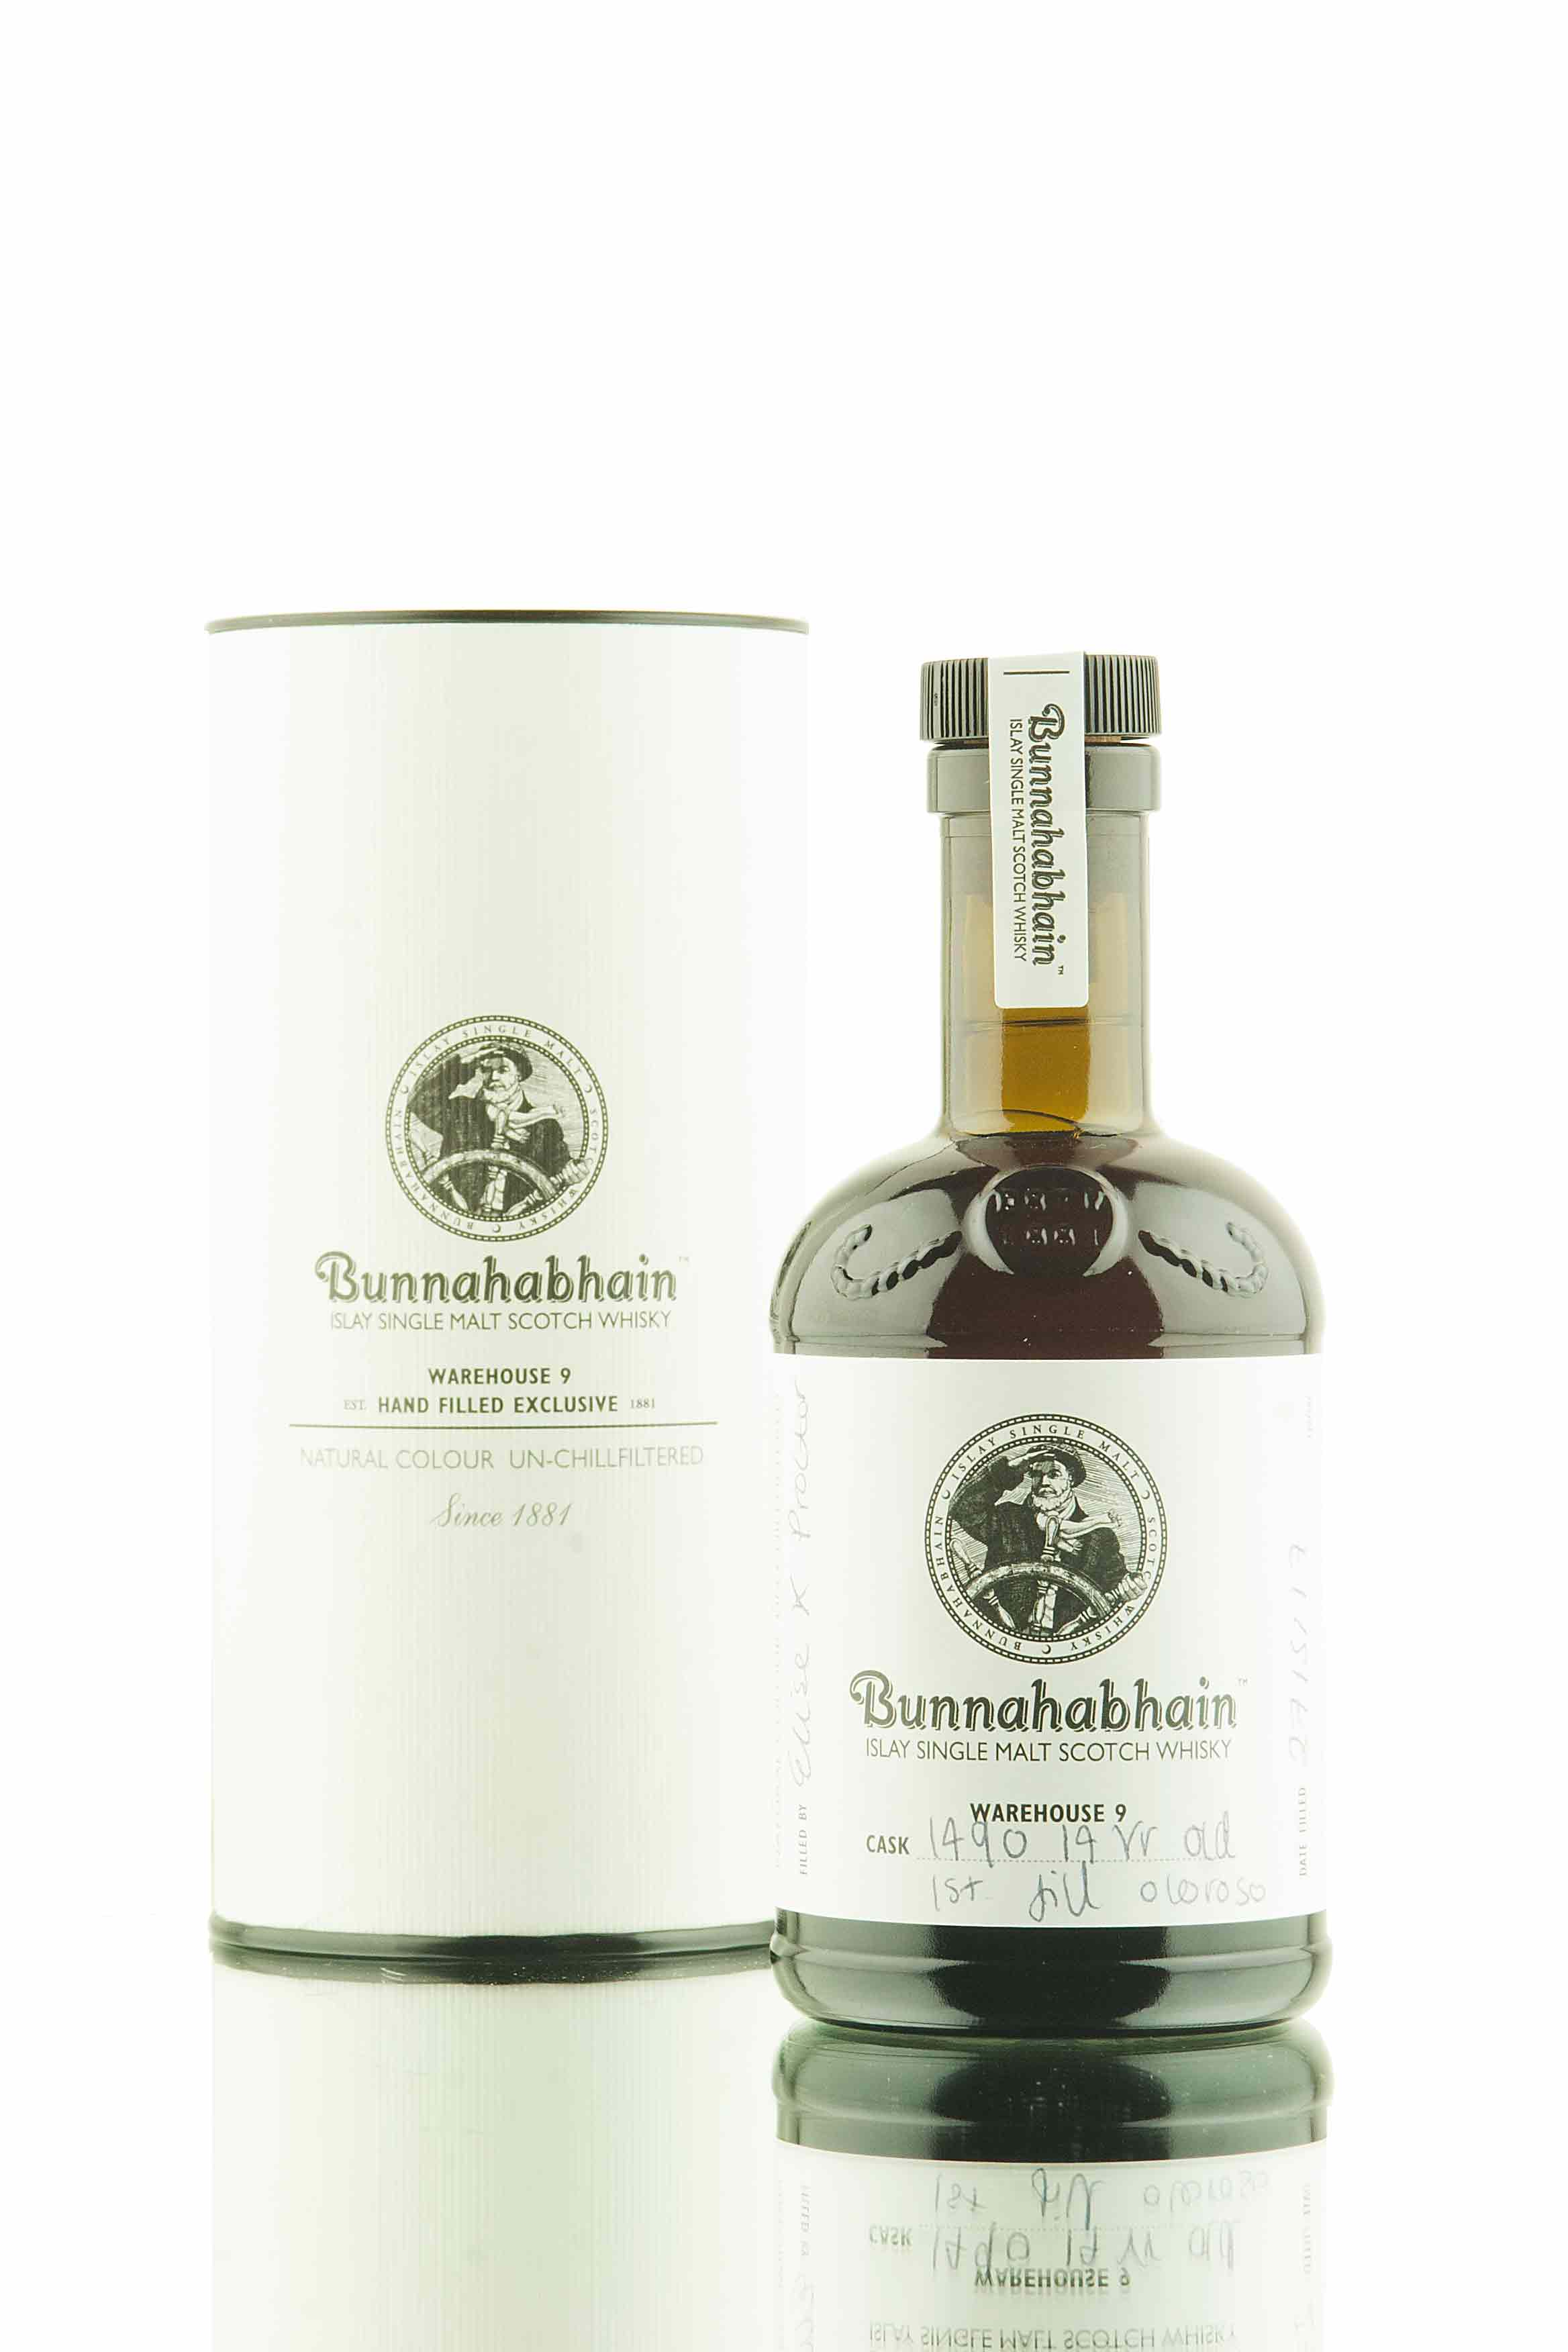 Bunnahabhain 14 Year Old - Hand Filled Exclusive Cask 1490